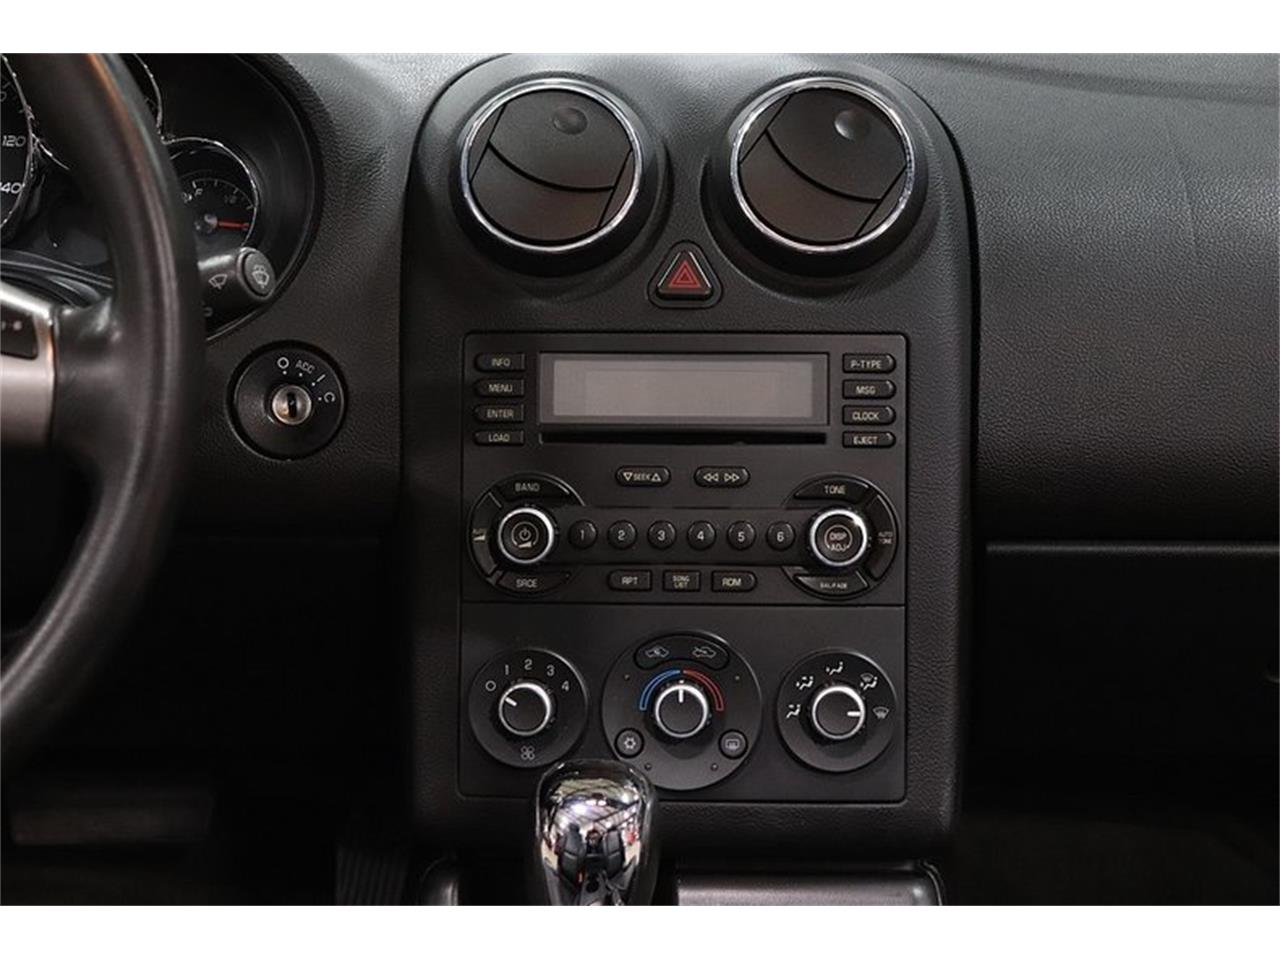 2006 pontiac g6 radio not working